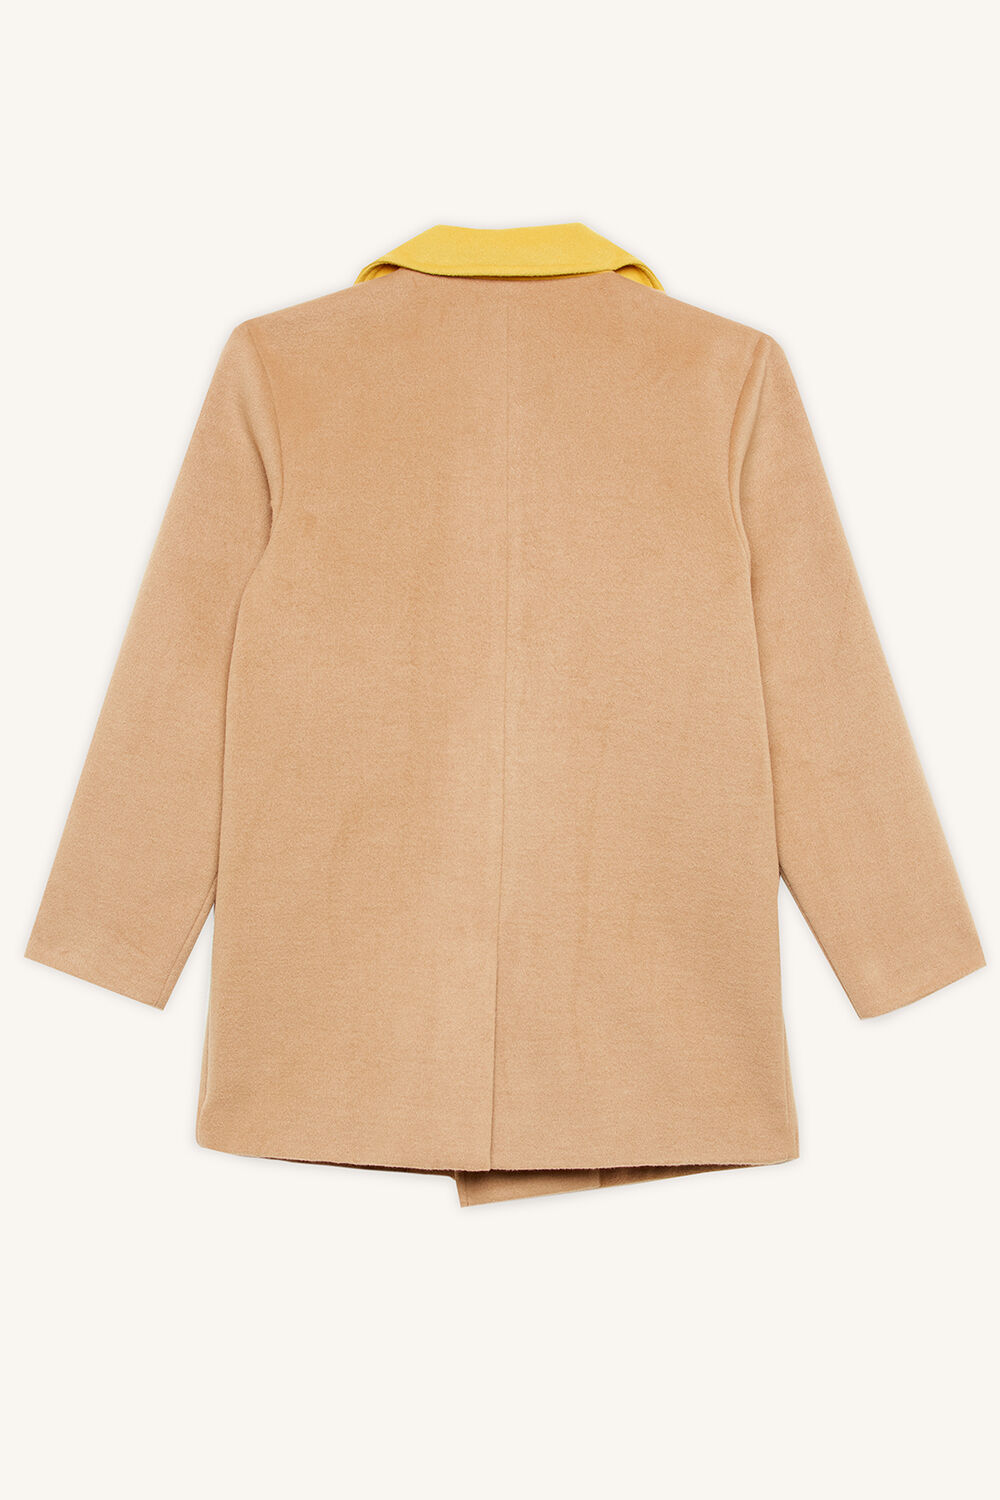 BENNETT WOOL COAT in colour TAN